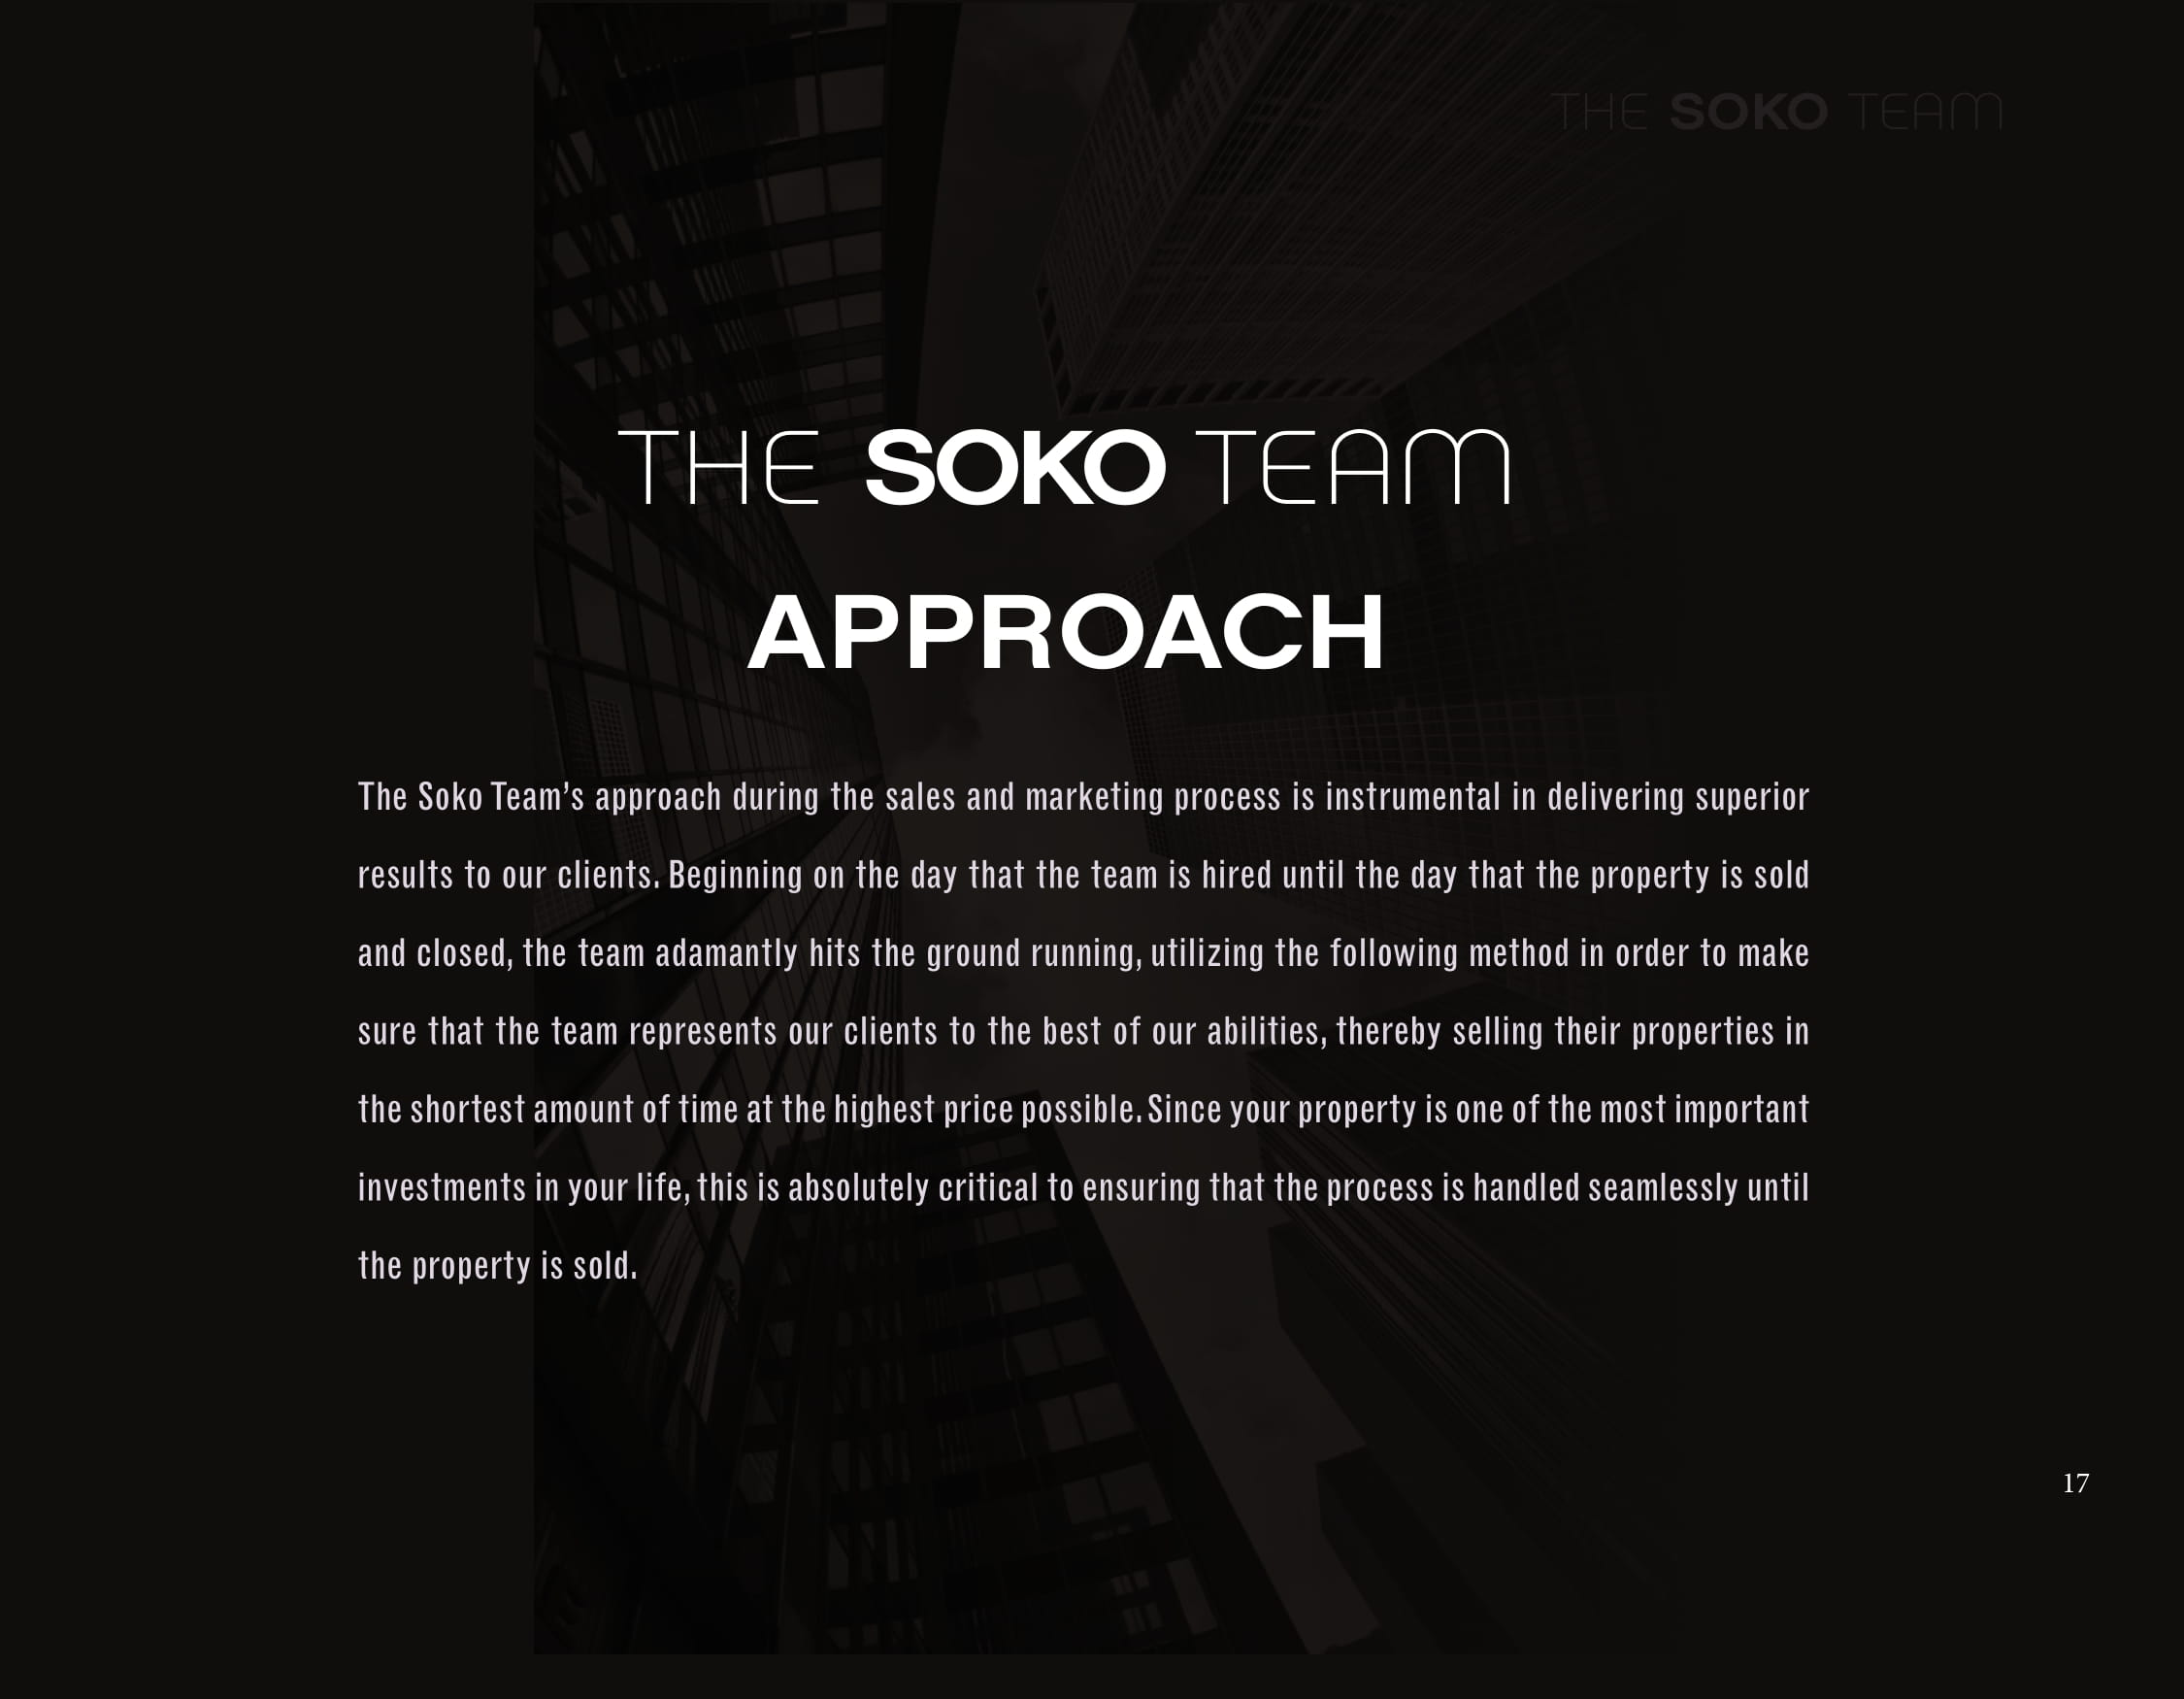 The Soko Team Pitch Book - UPD January 2018-17.jpg